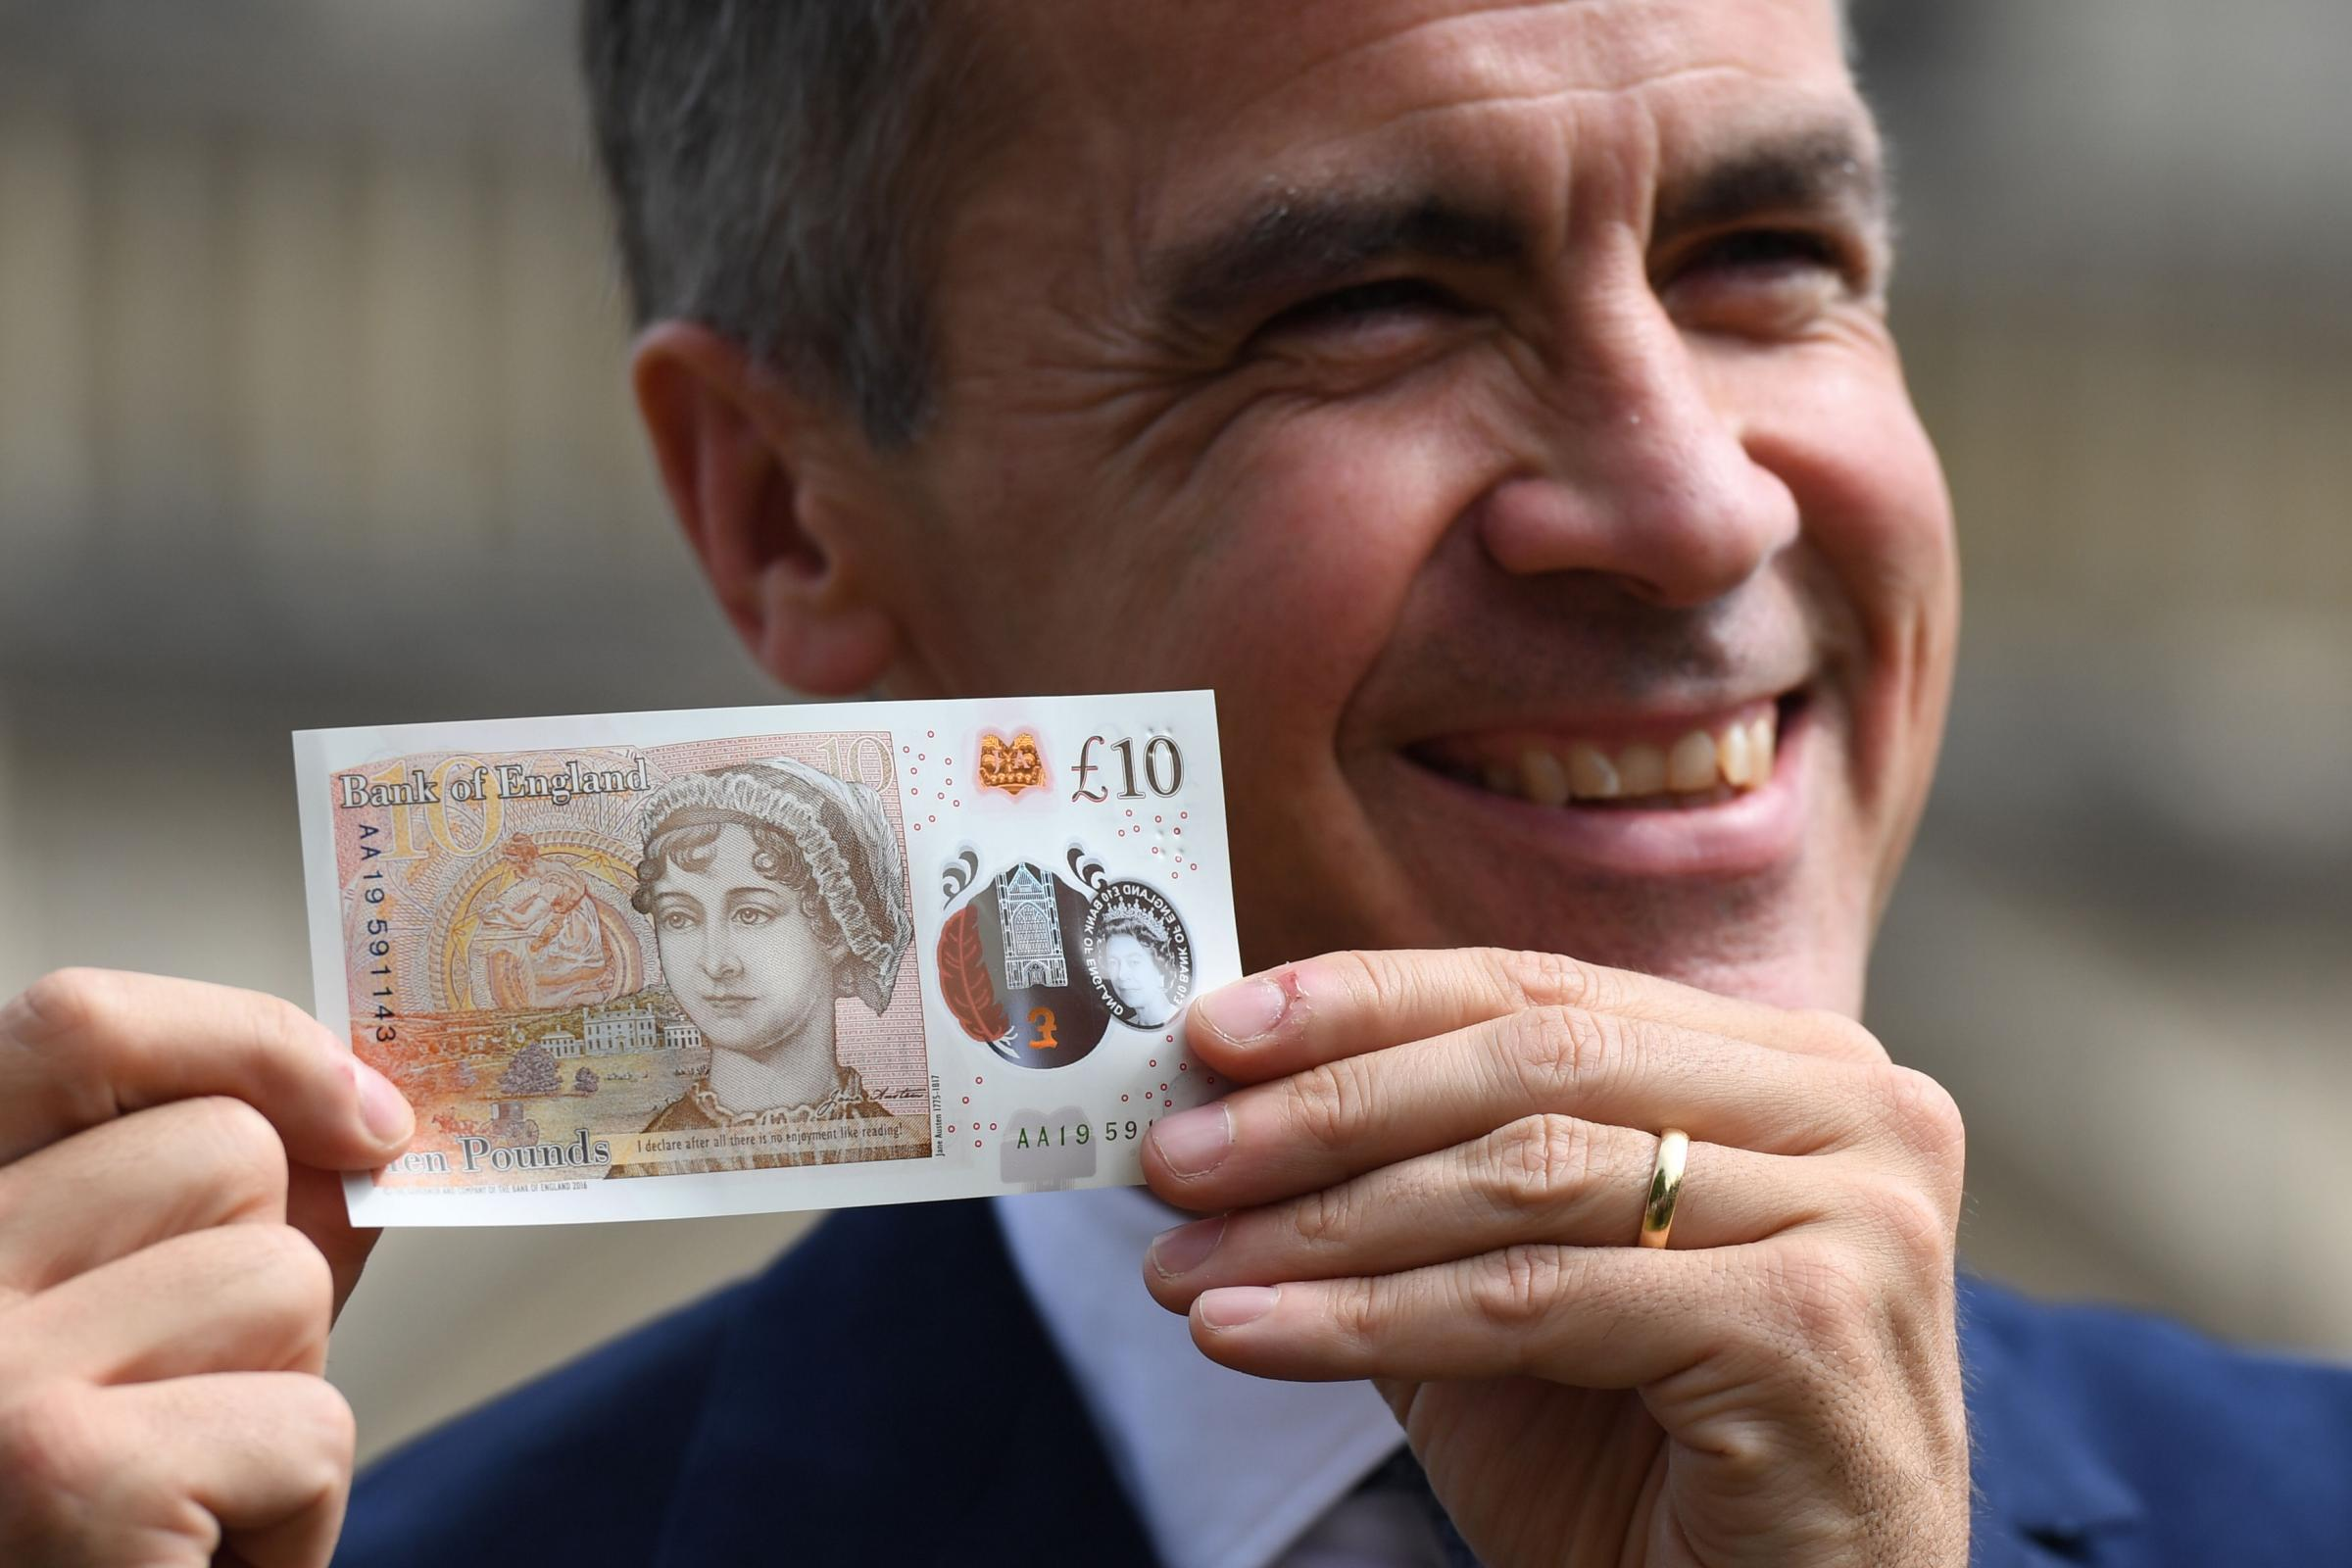 The Governor of the Bank of England, Mark Carney, with the new £10 note featuring Jane Austen PIC: Chris J Ratcliffe/PA